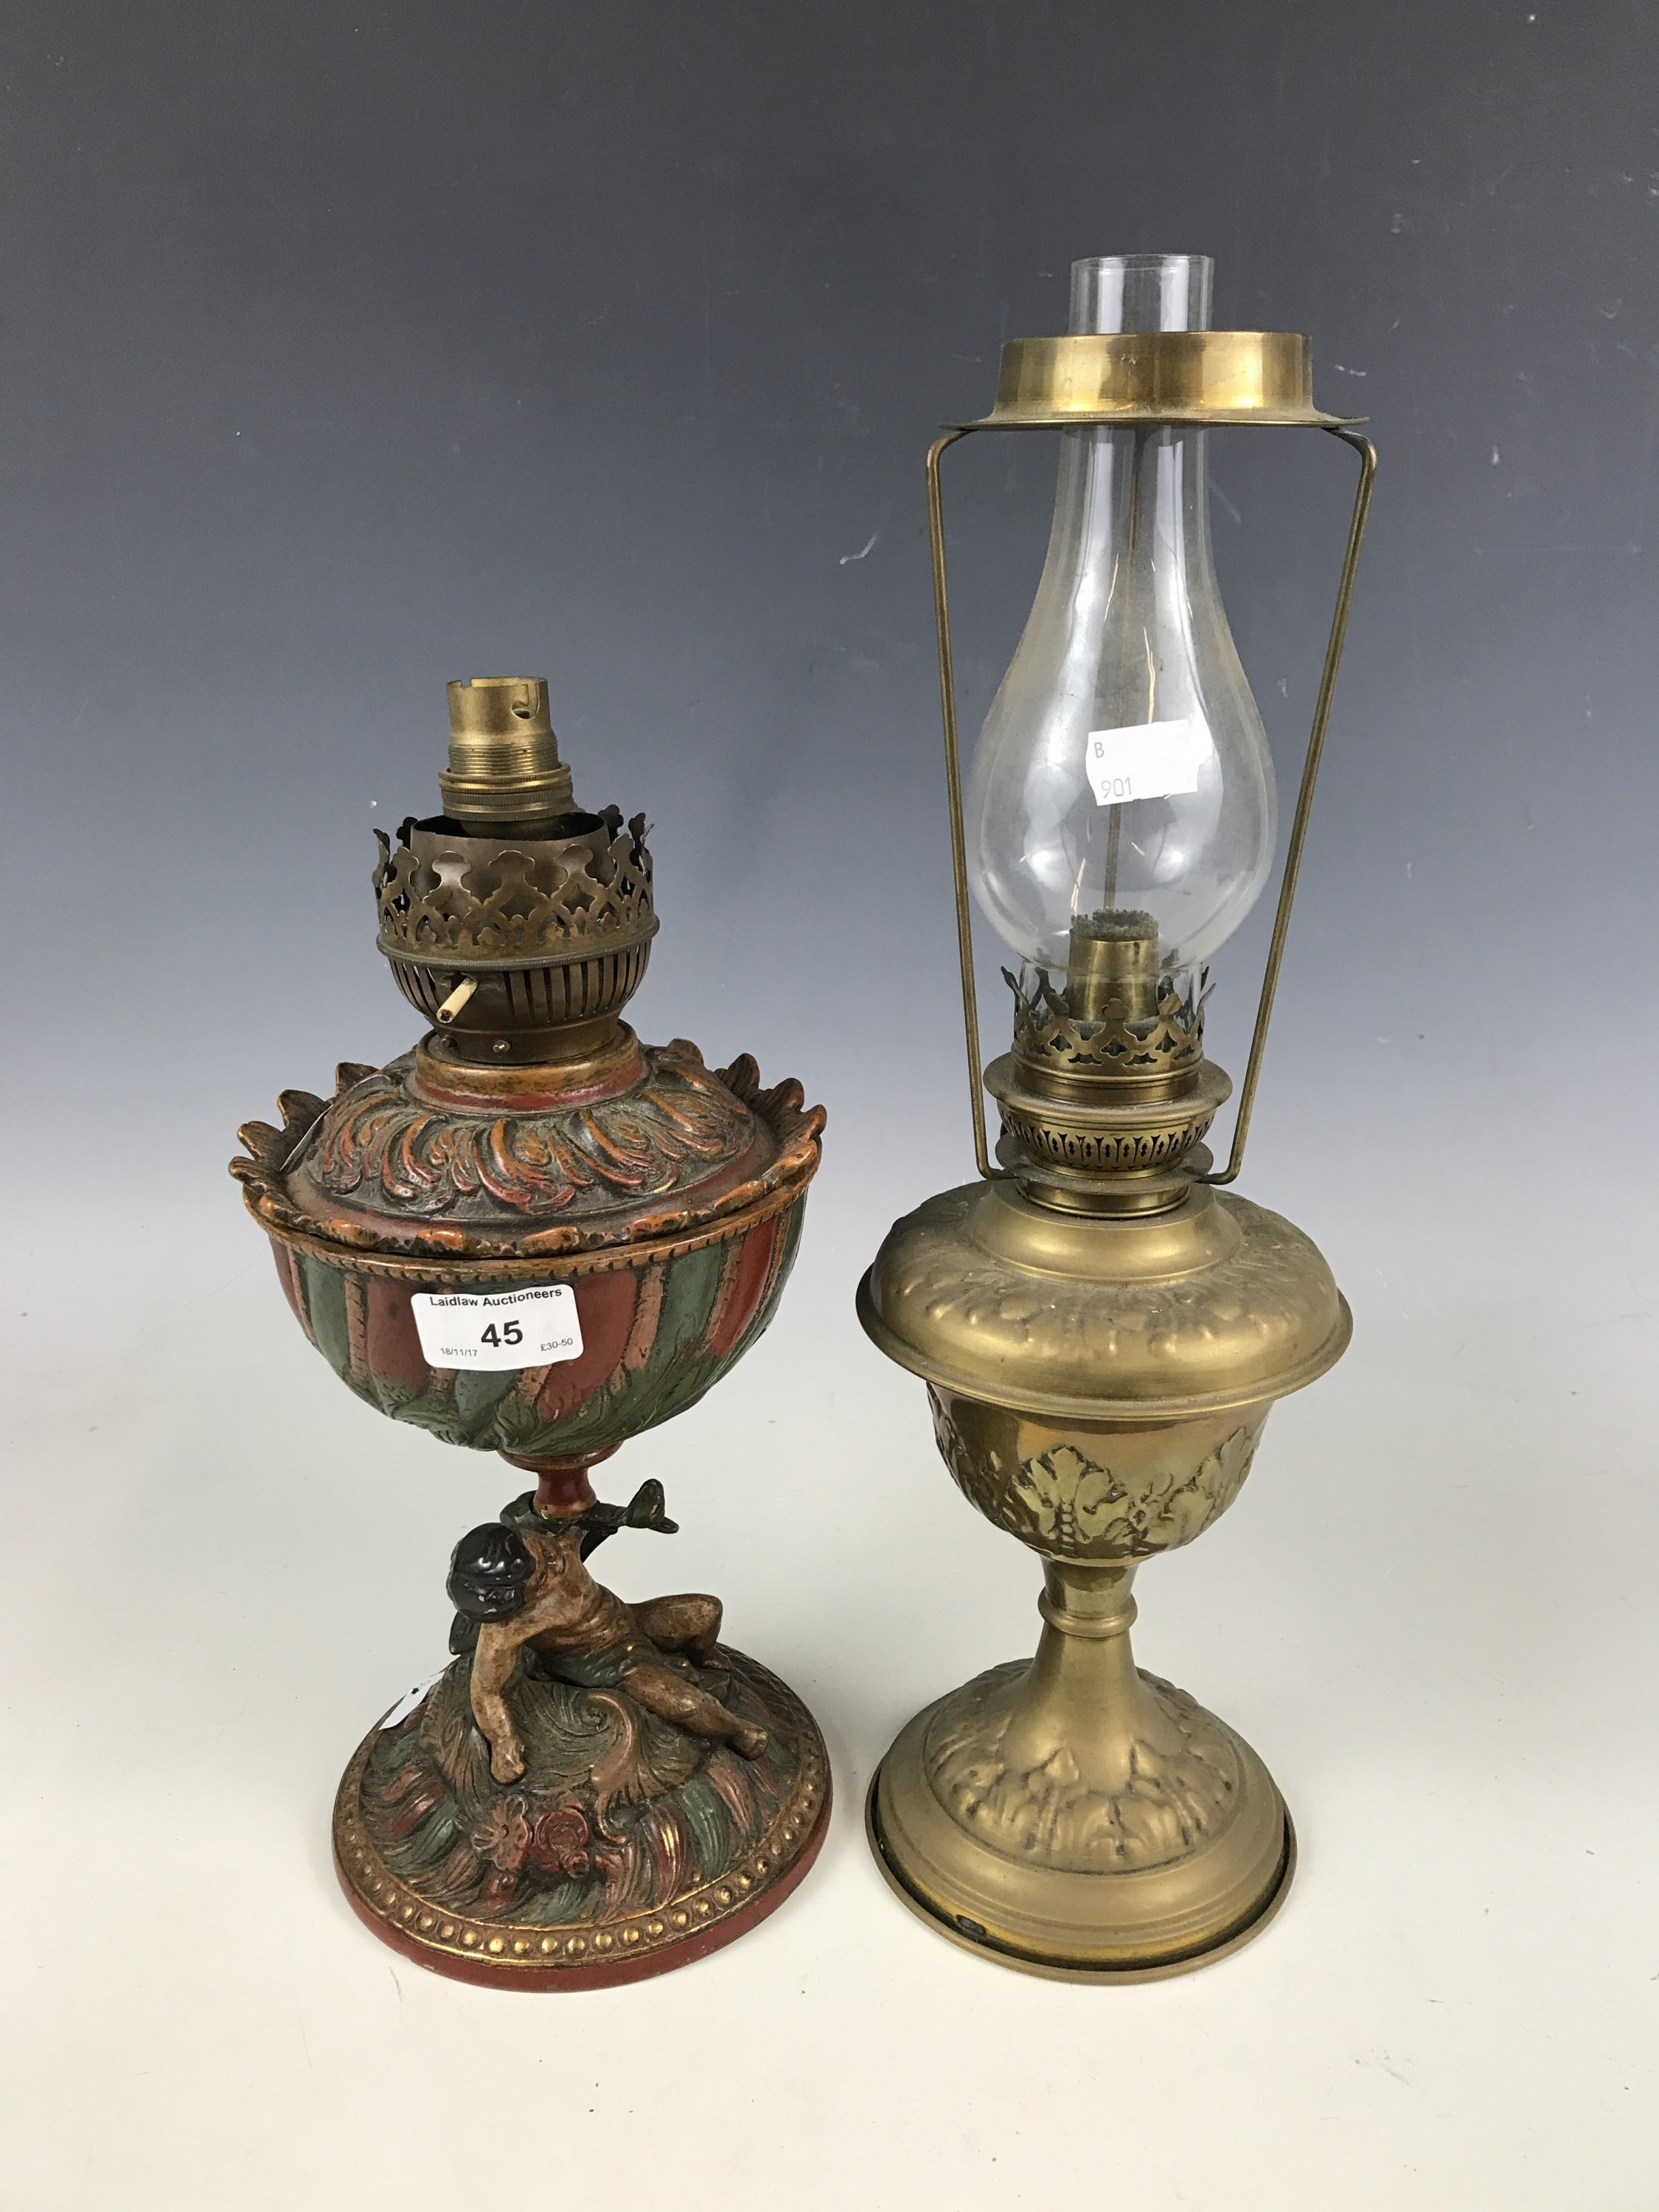 Lot 45 - Two oil lamps